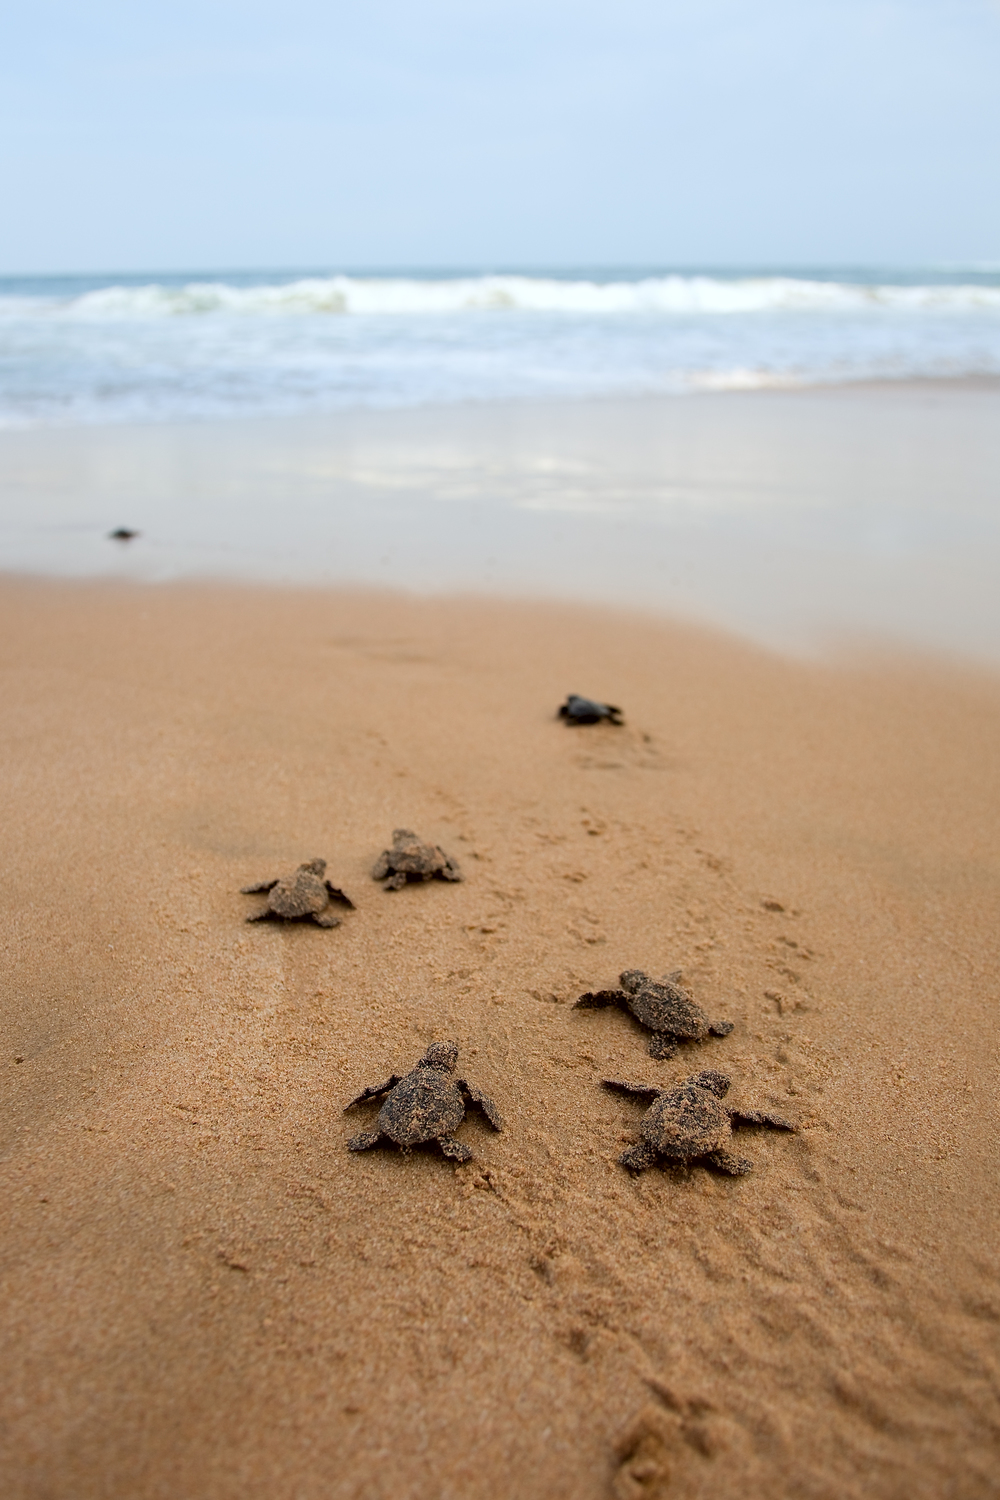 invite-to-paradise-sri-lanka-holidays-honeymoons-specialists-wildlife-baby-sea-turtle-hatchery-visit-habaraduwa-kosgoda-6.jpg